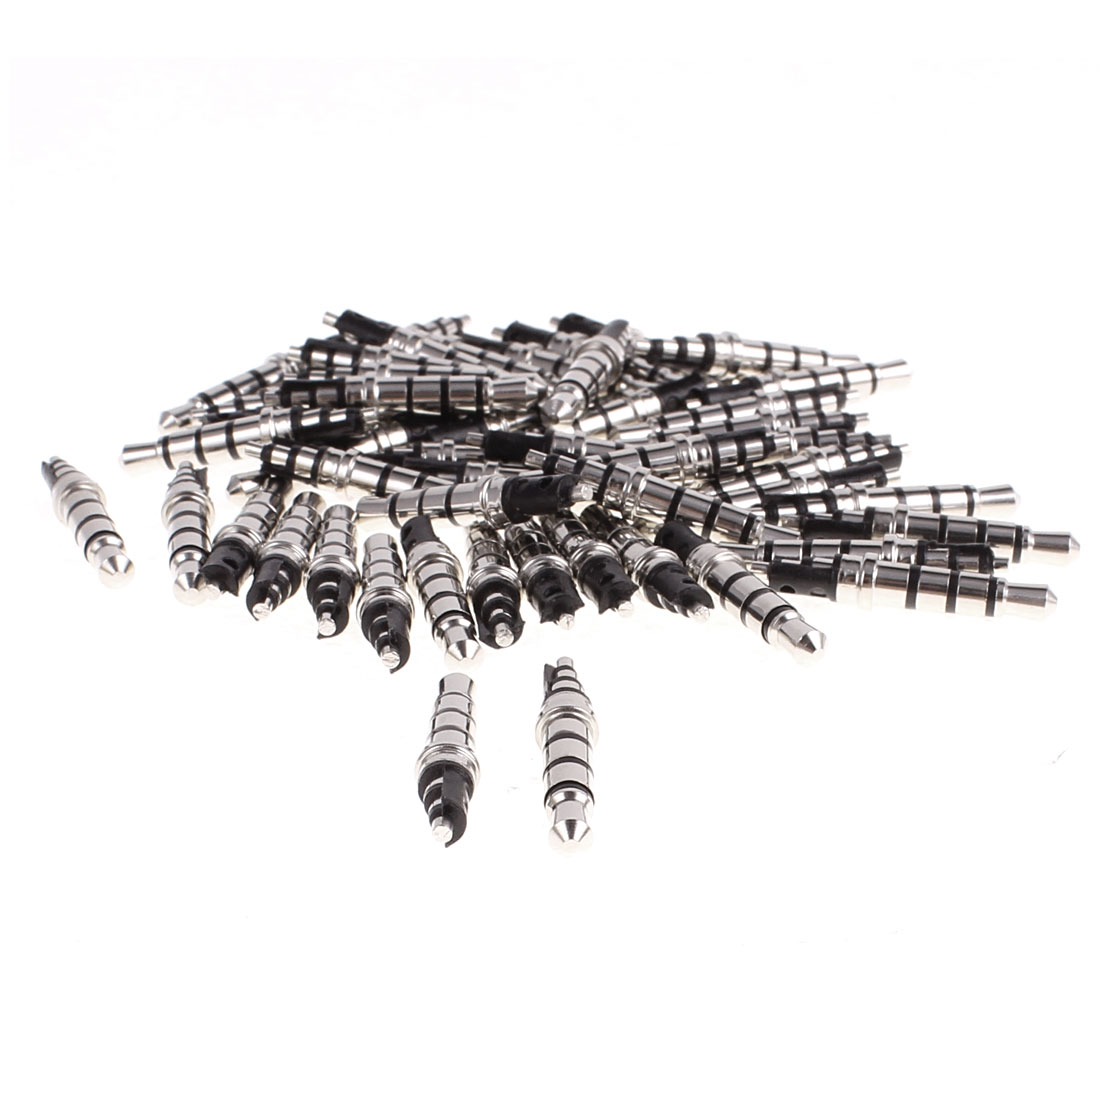 Audio Headphone 35mm 4 Poles Male Plug Jack Solder Connector Black Wiring 50pcs